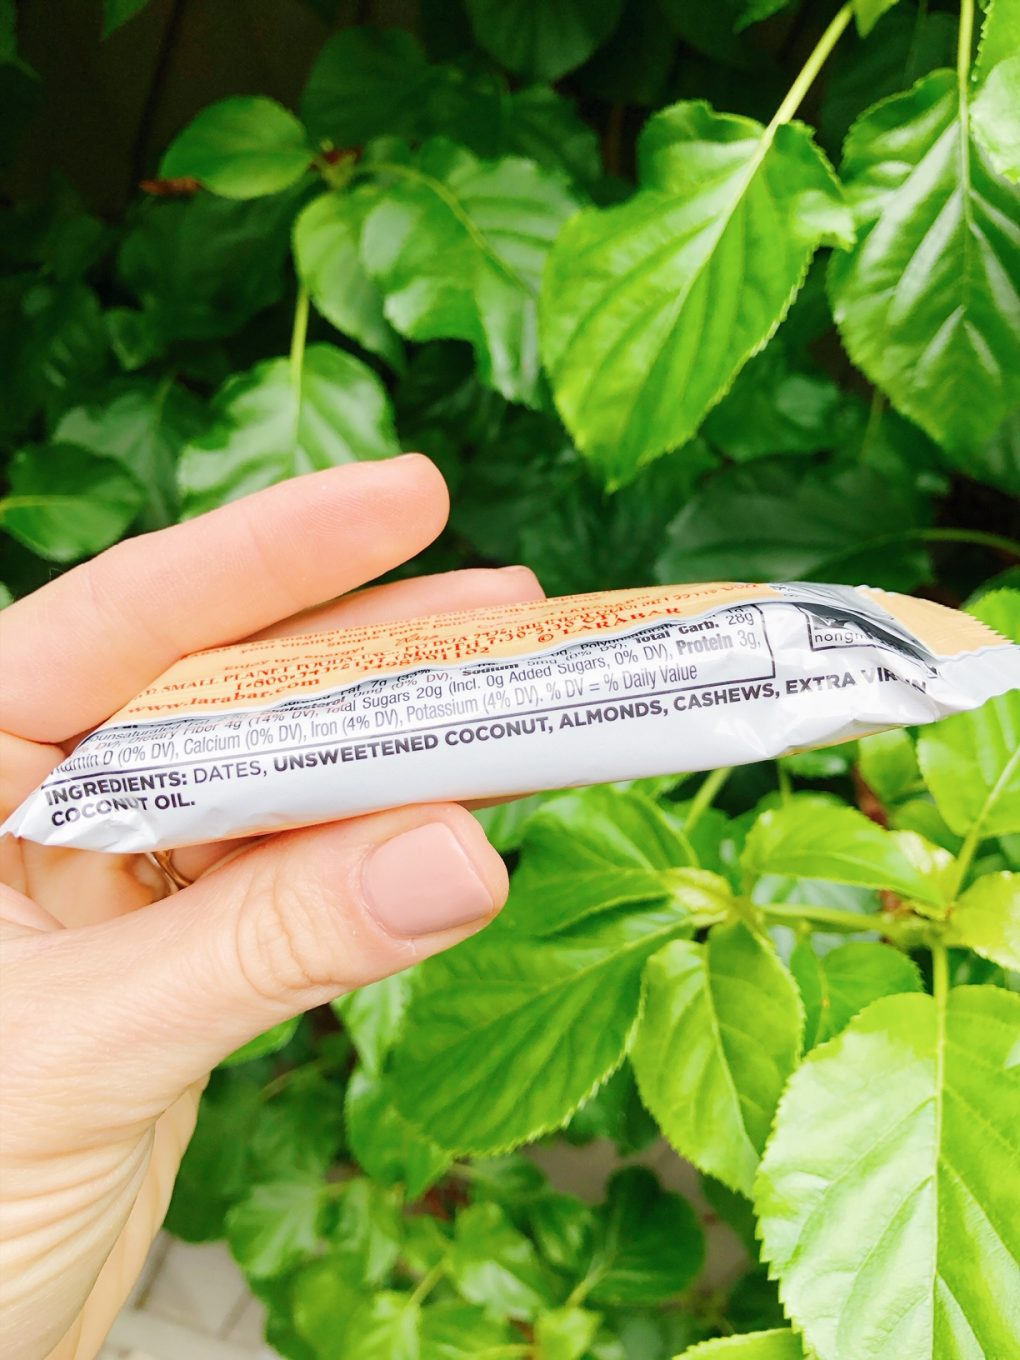 Holding a coconut cream pie lara bar with ingredients showing in front of a green bush